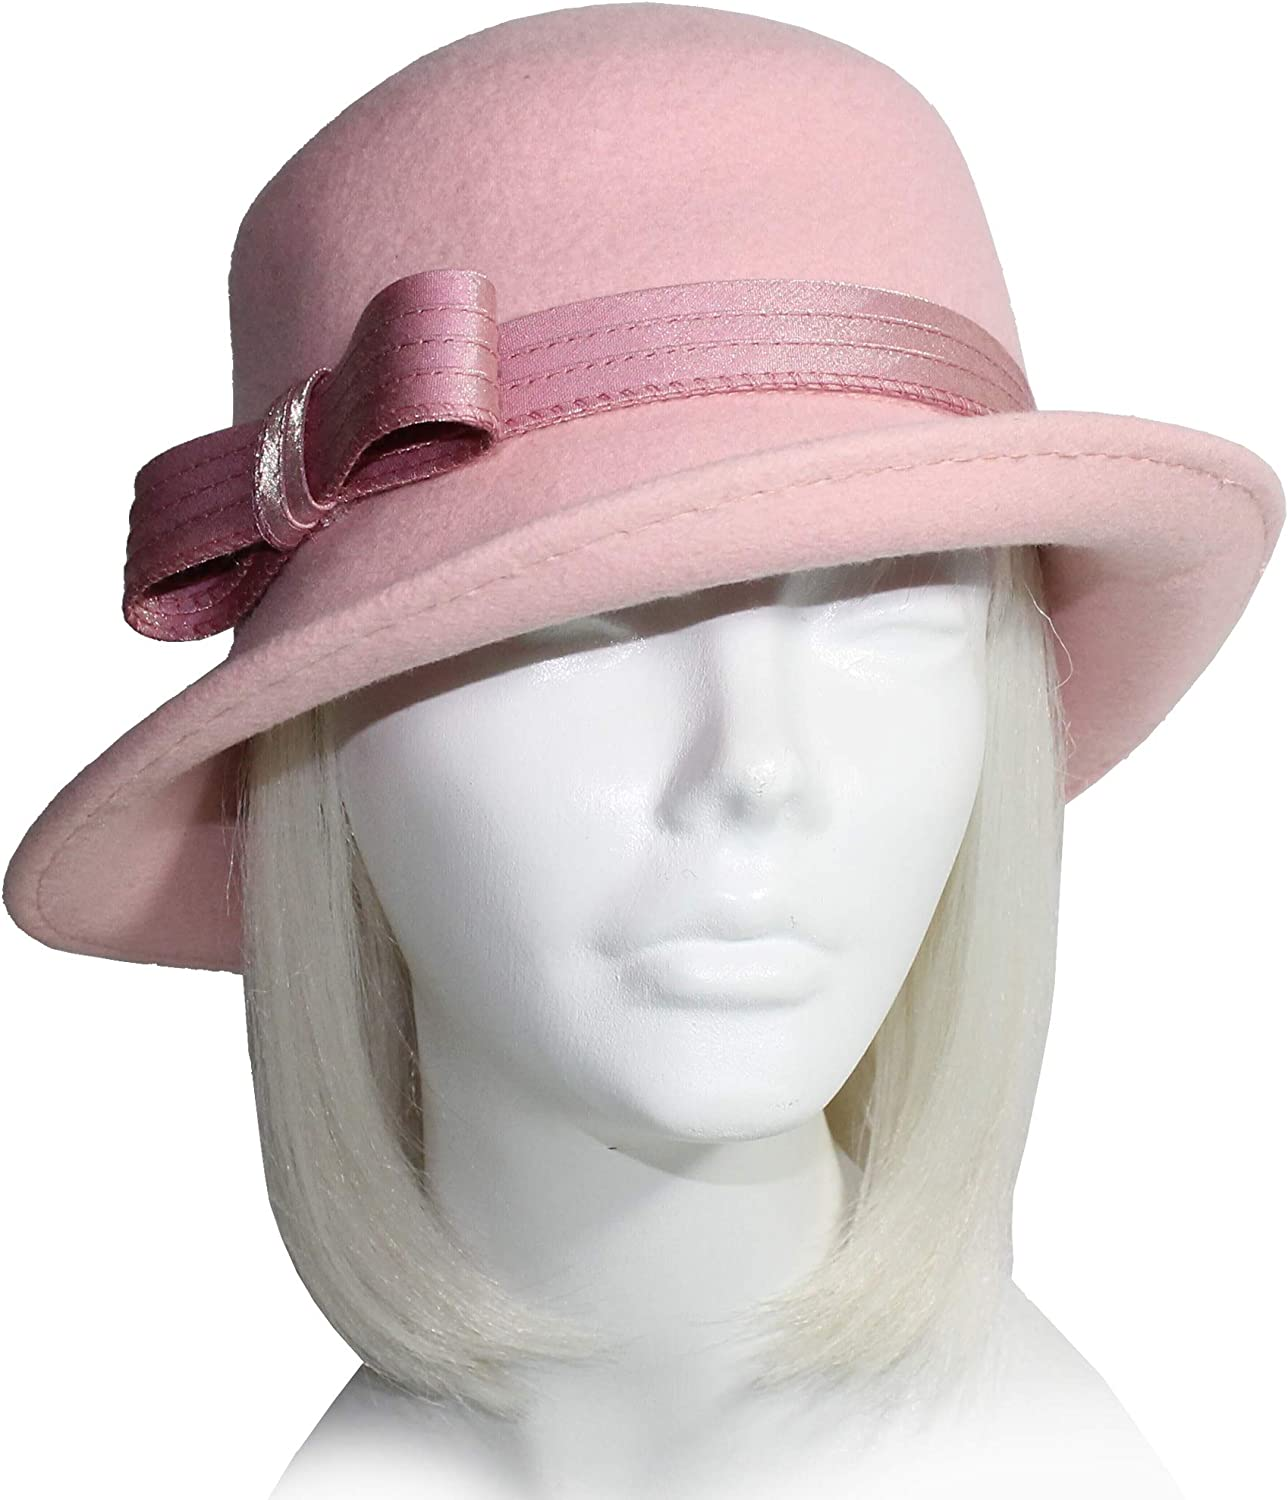 LuxuriouslySoft Felt Bucket Fedora Hat With Turned Up Brim  Q116